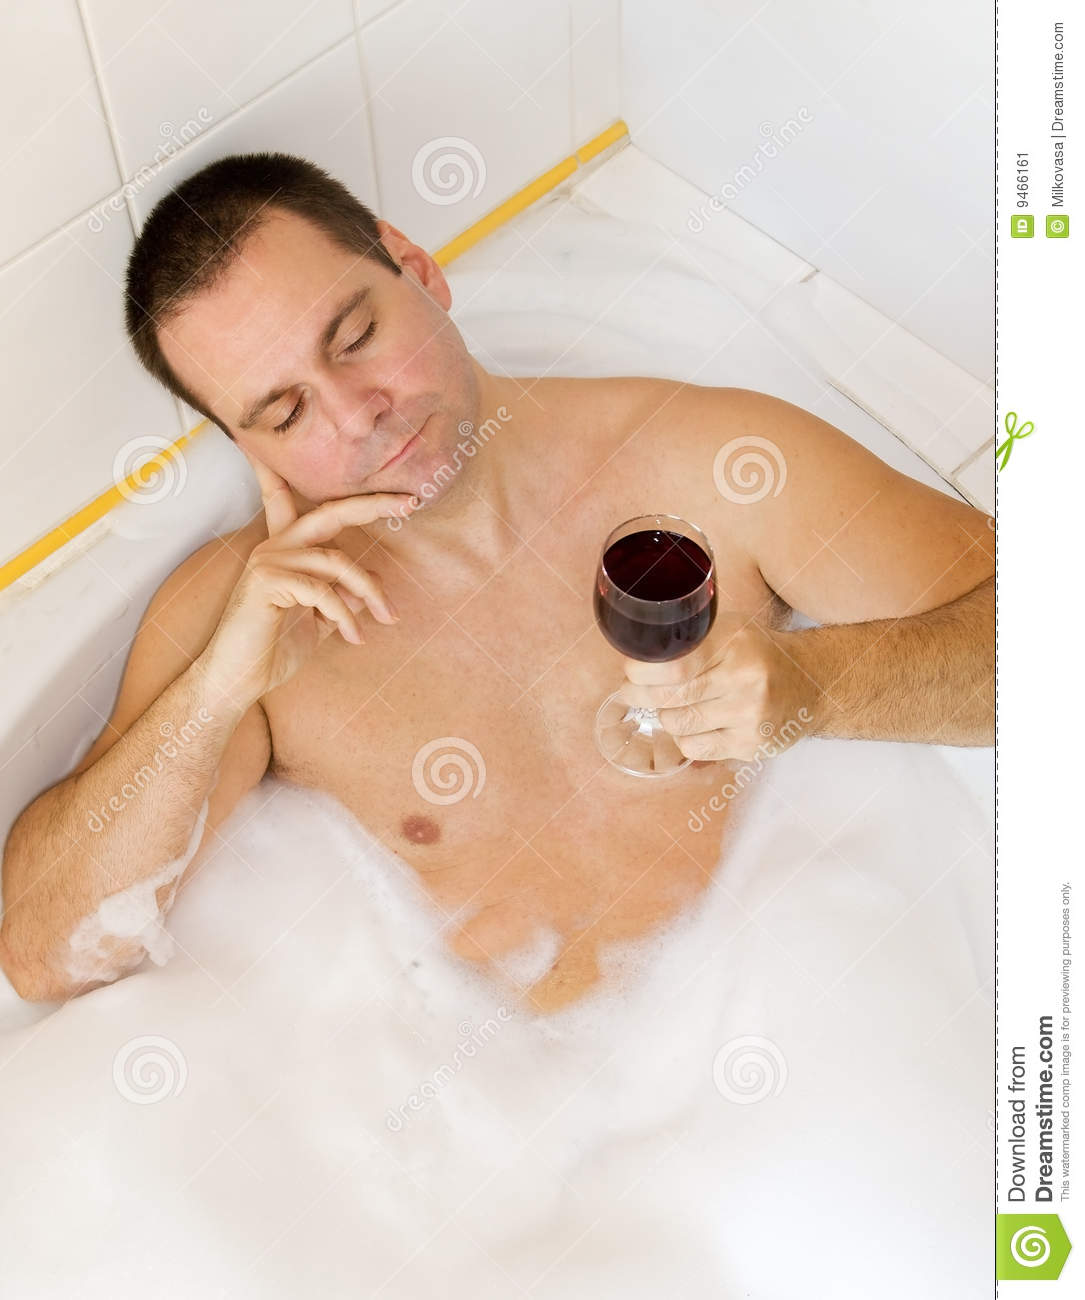 Man In Bathtub Stock Image - Image: 9466161